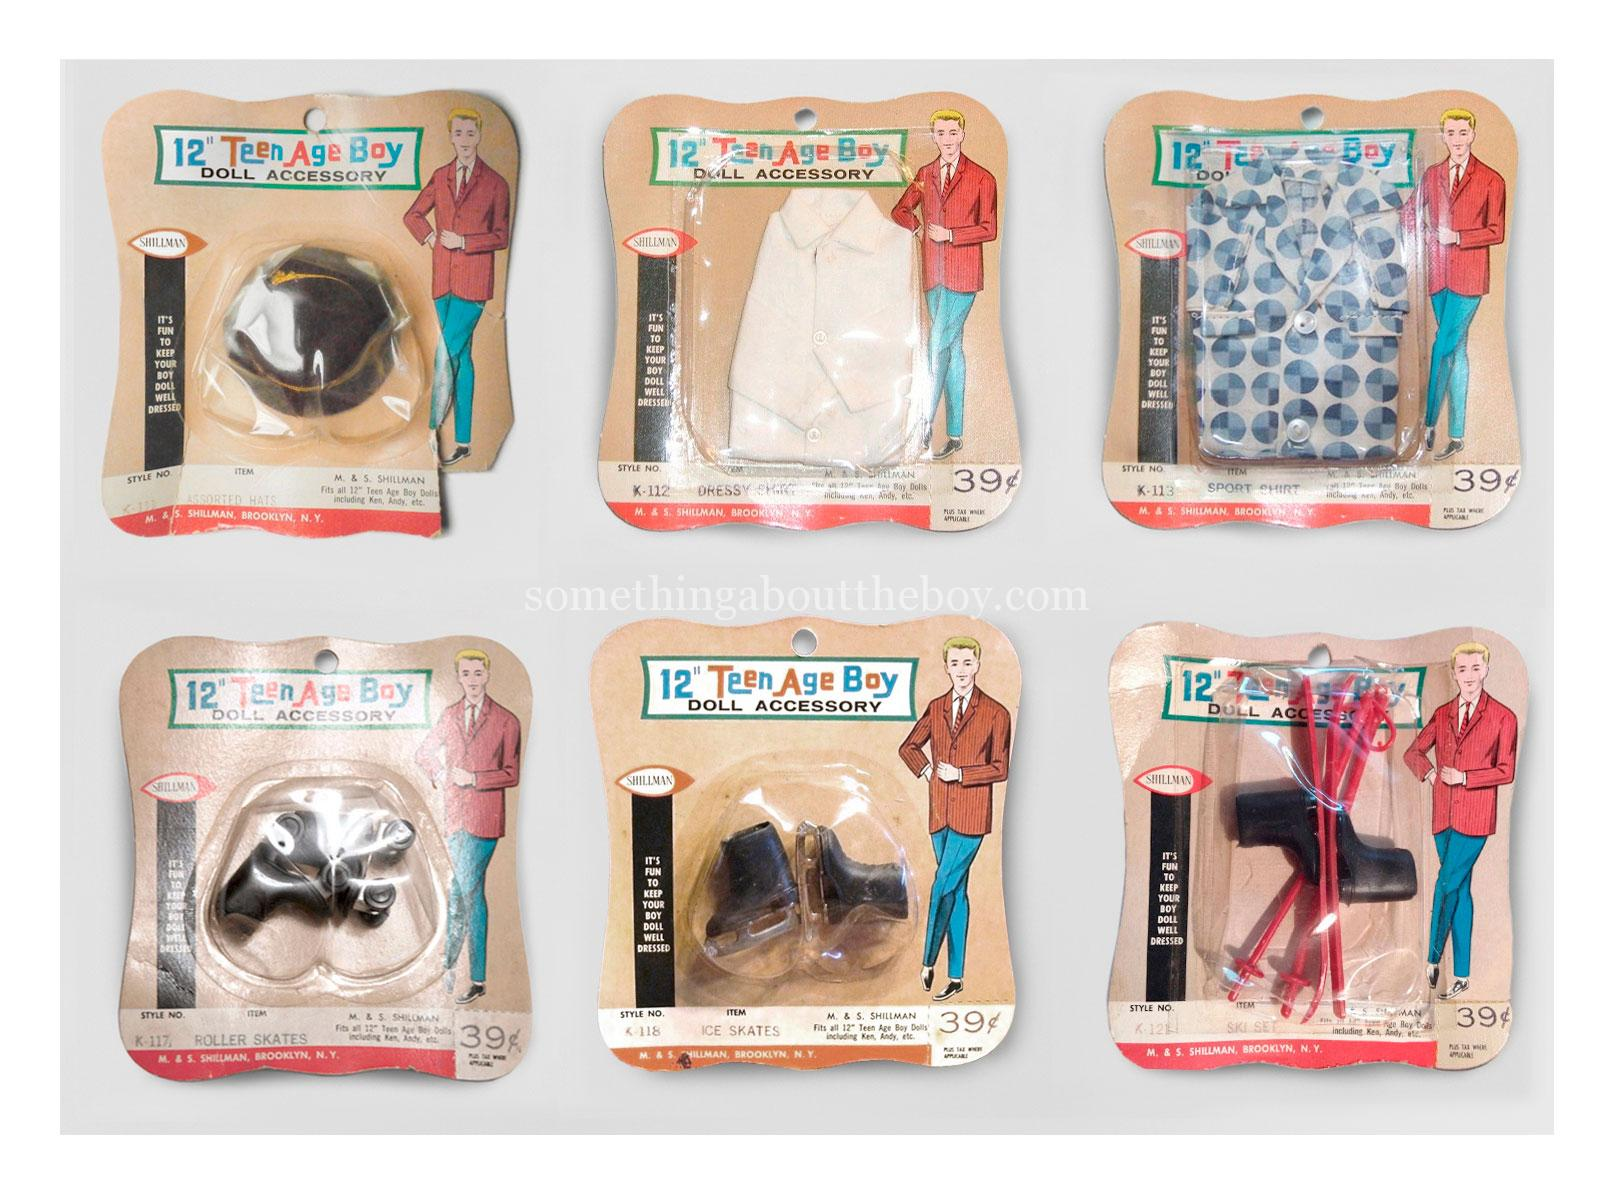 "12"" Teen Age Boy accessory sets by M&S Shillman"